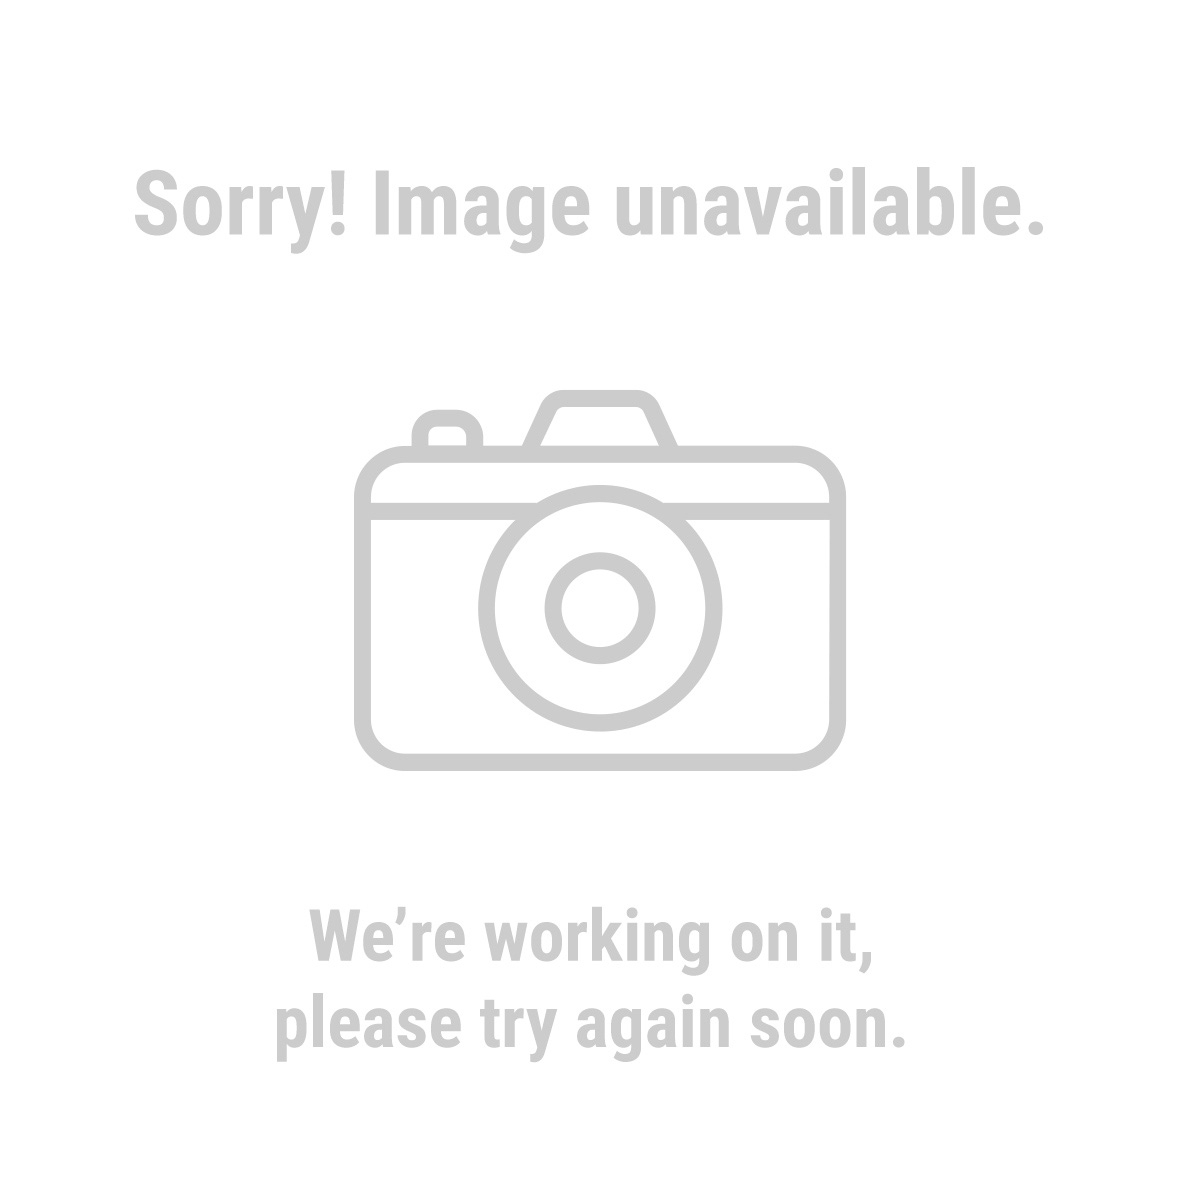 Central Pneumatic 93205 Lightweight High Pressure Spray Gun